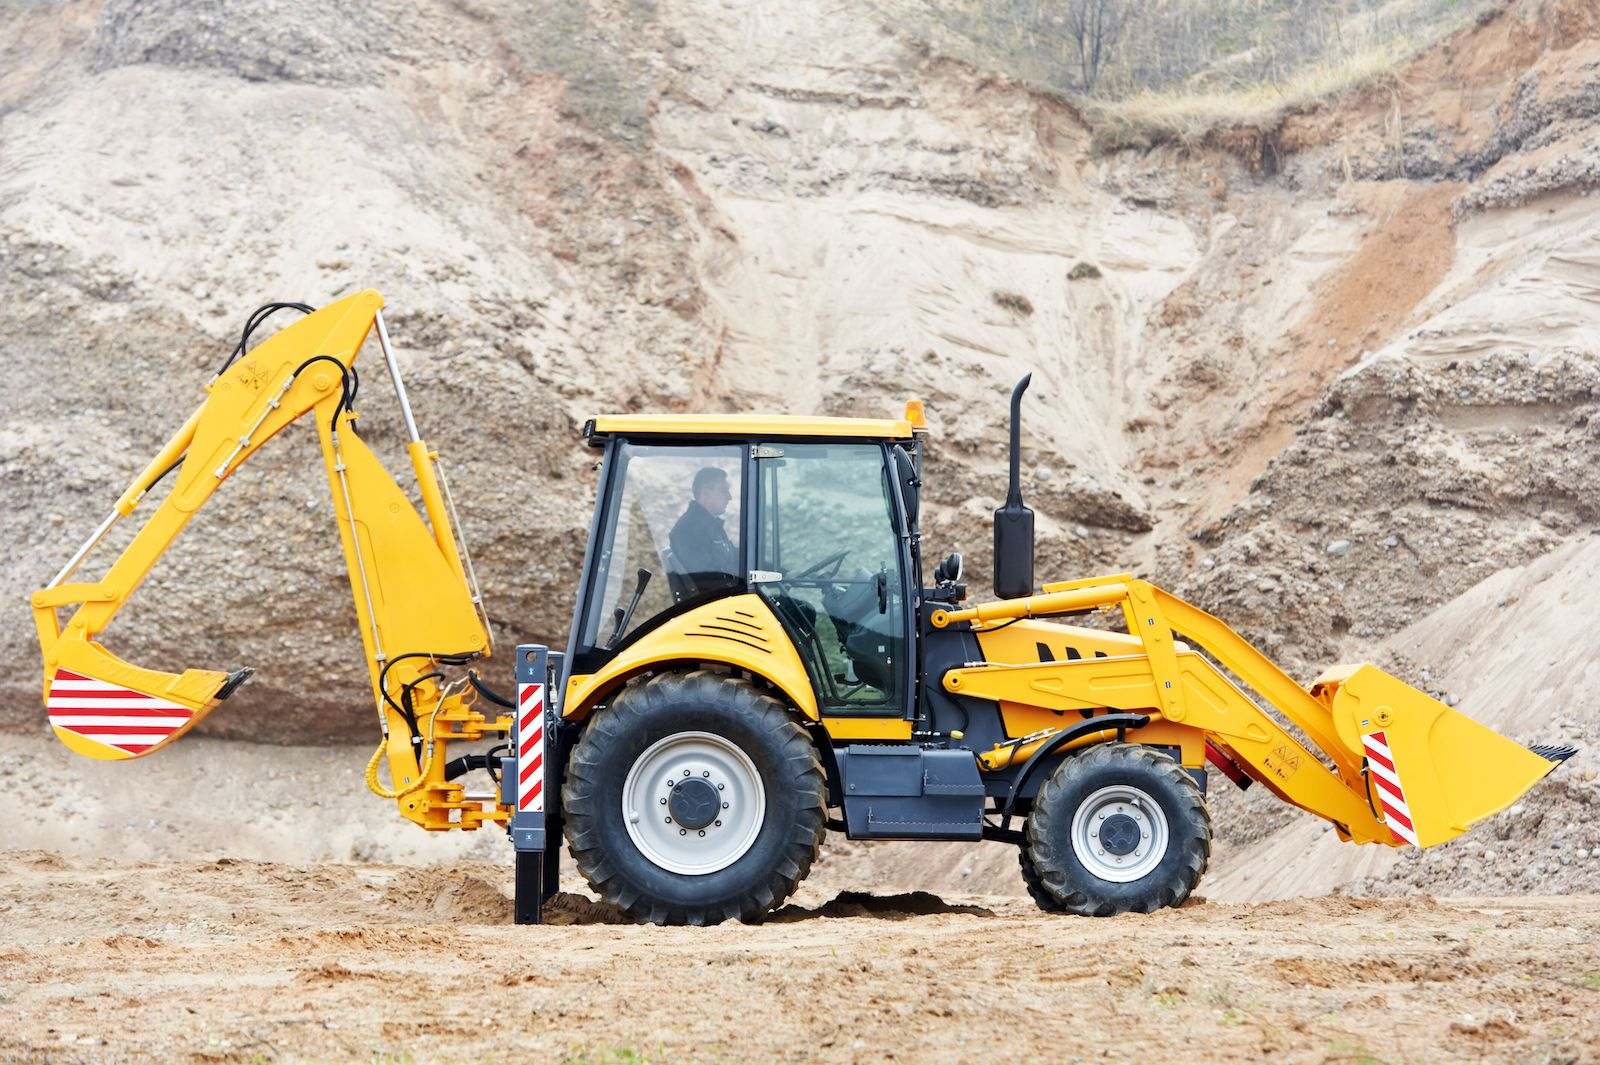 Loaders and Backhoes Online Course